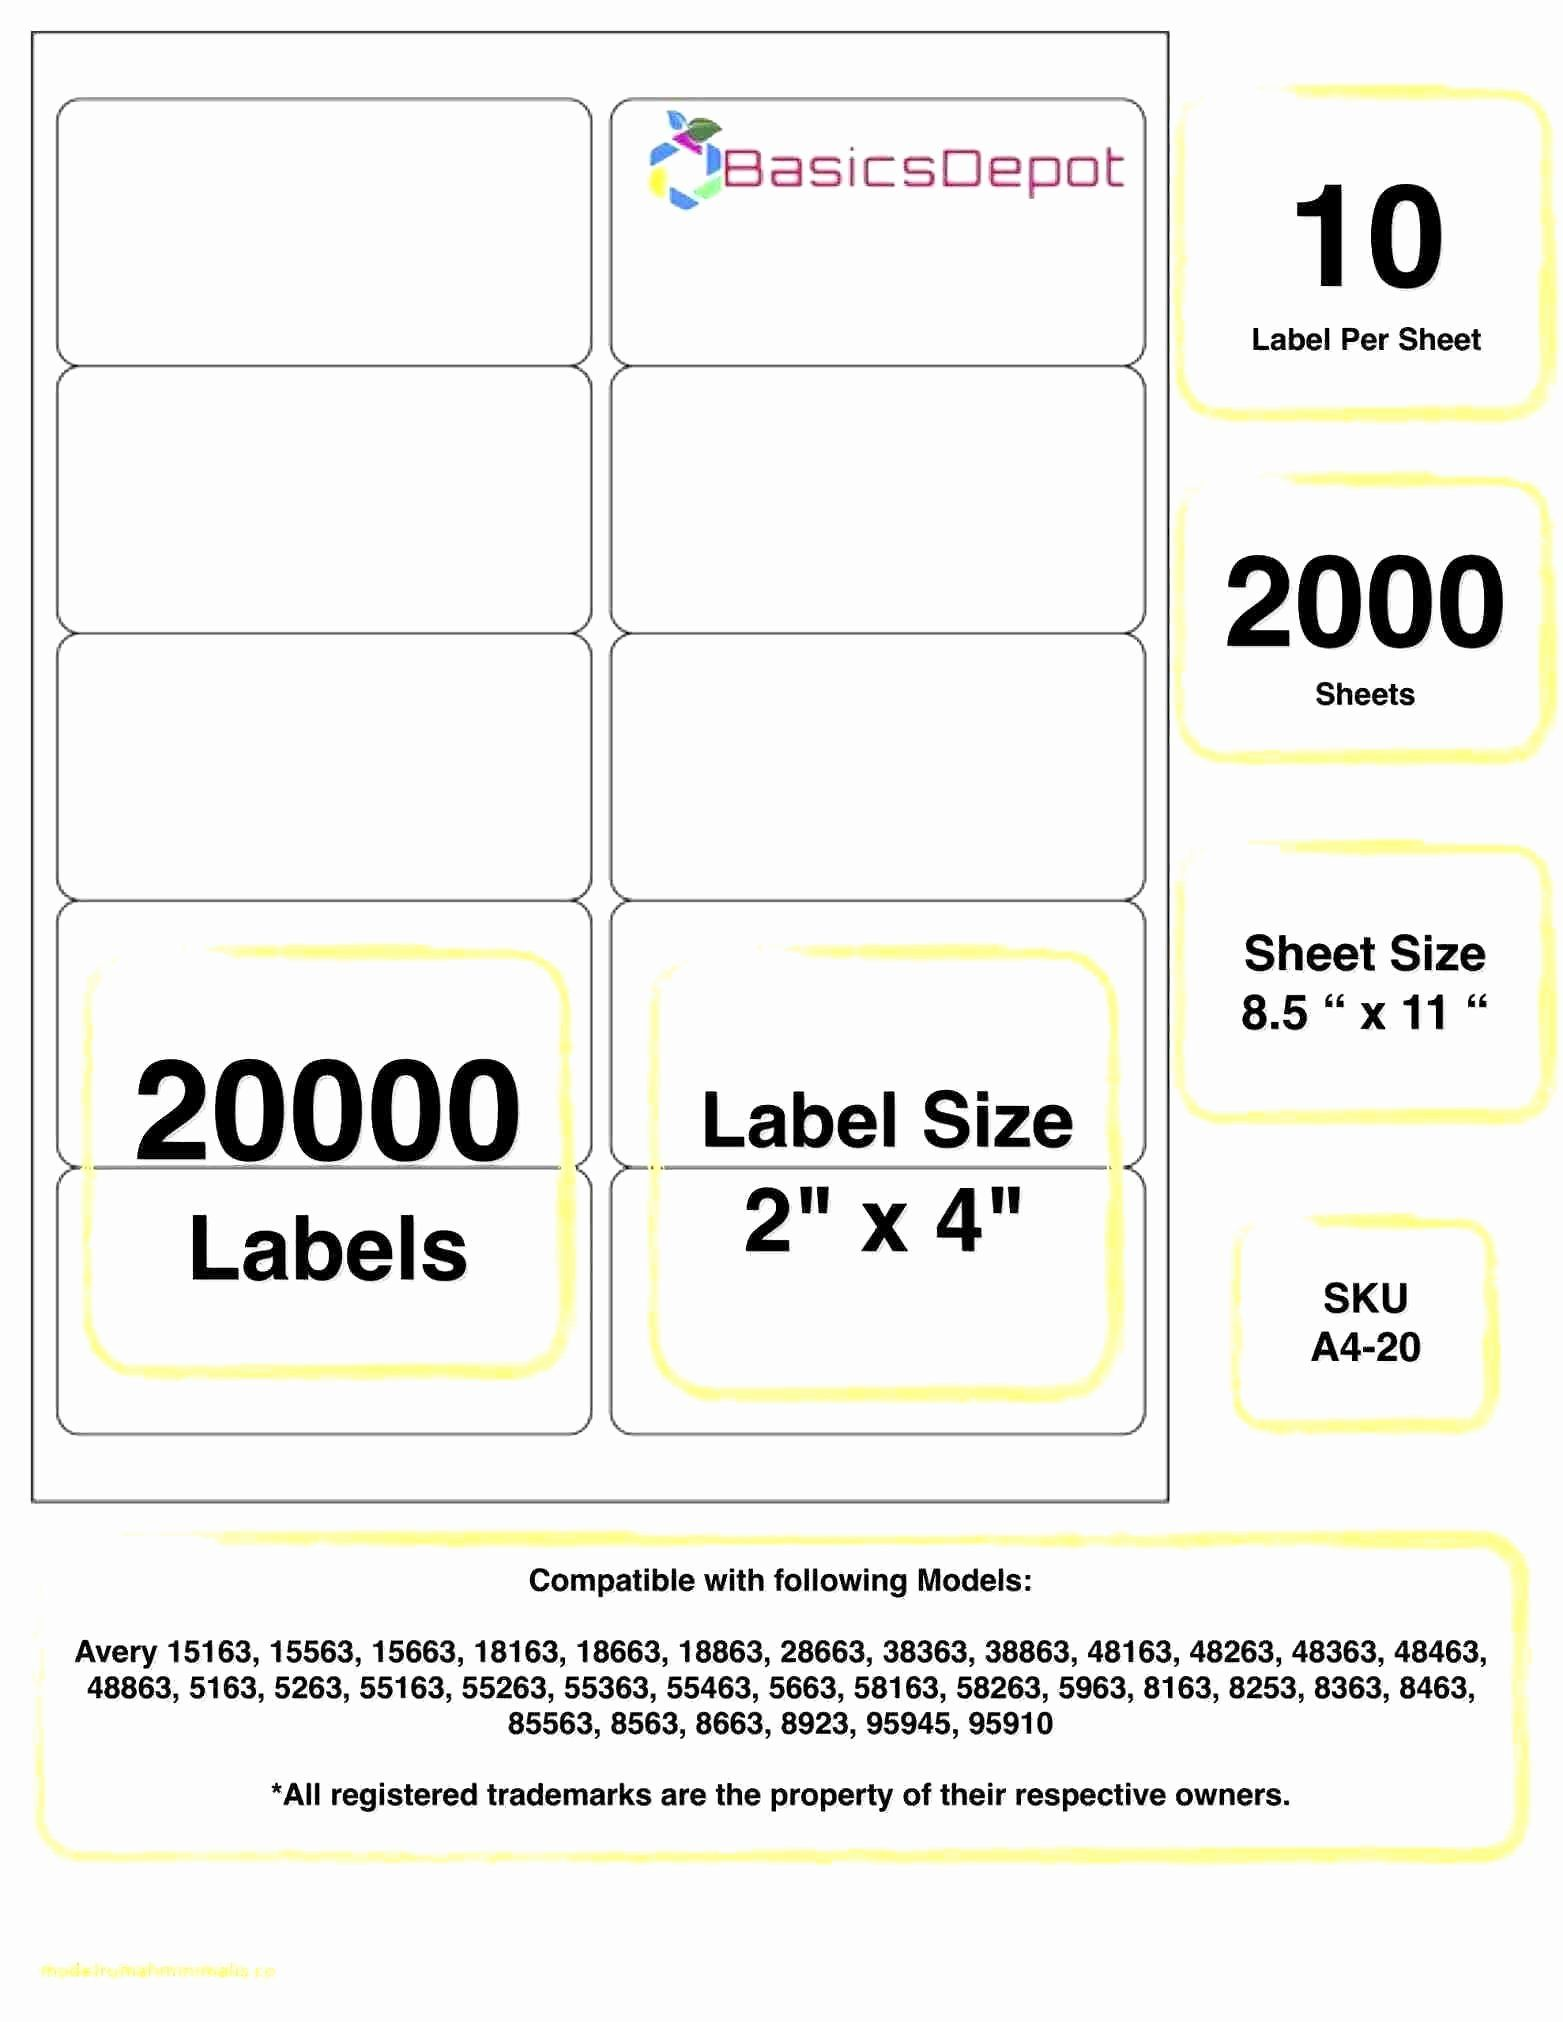 Avery Label 5163 Template Free Luxury Labels Template Avery In 2020 Label Templates Avery Label Templates Avery Shipping Labels